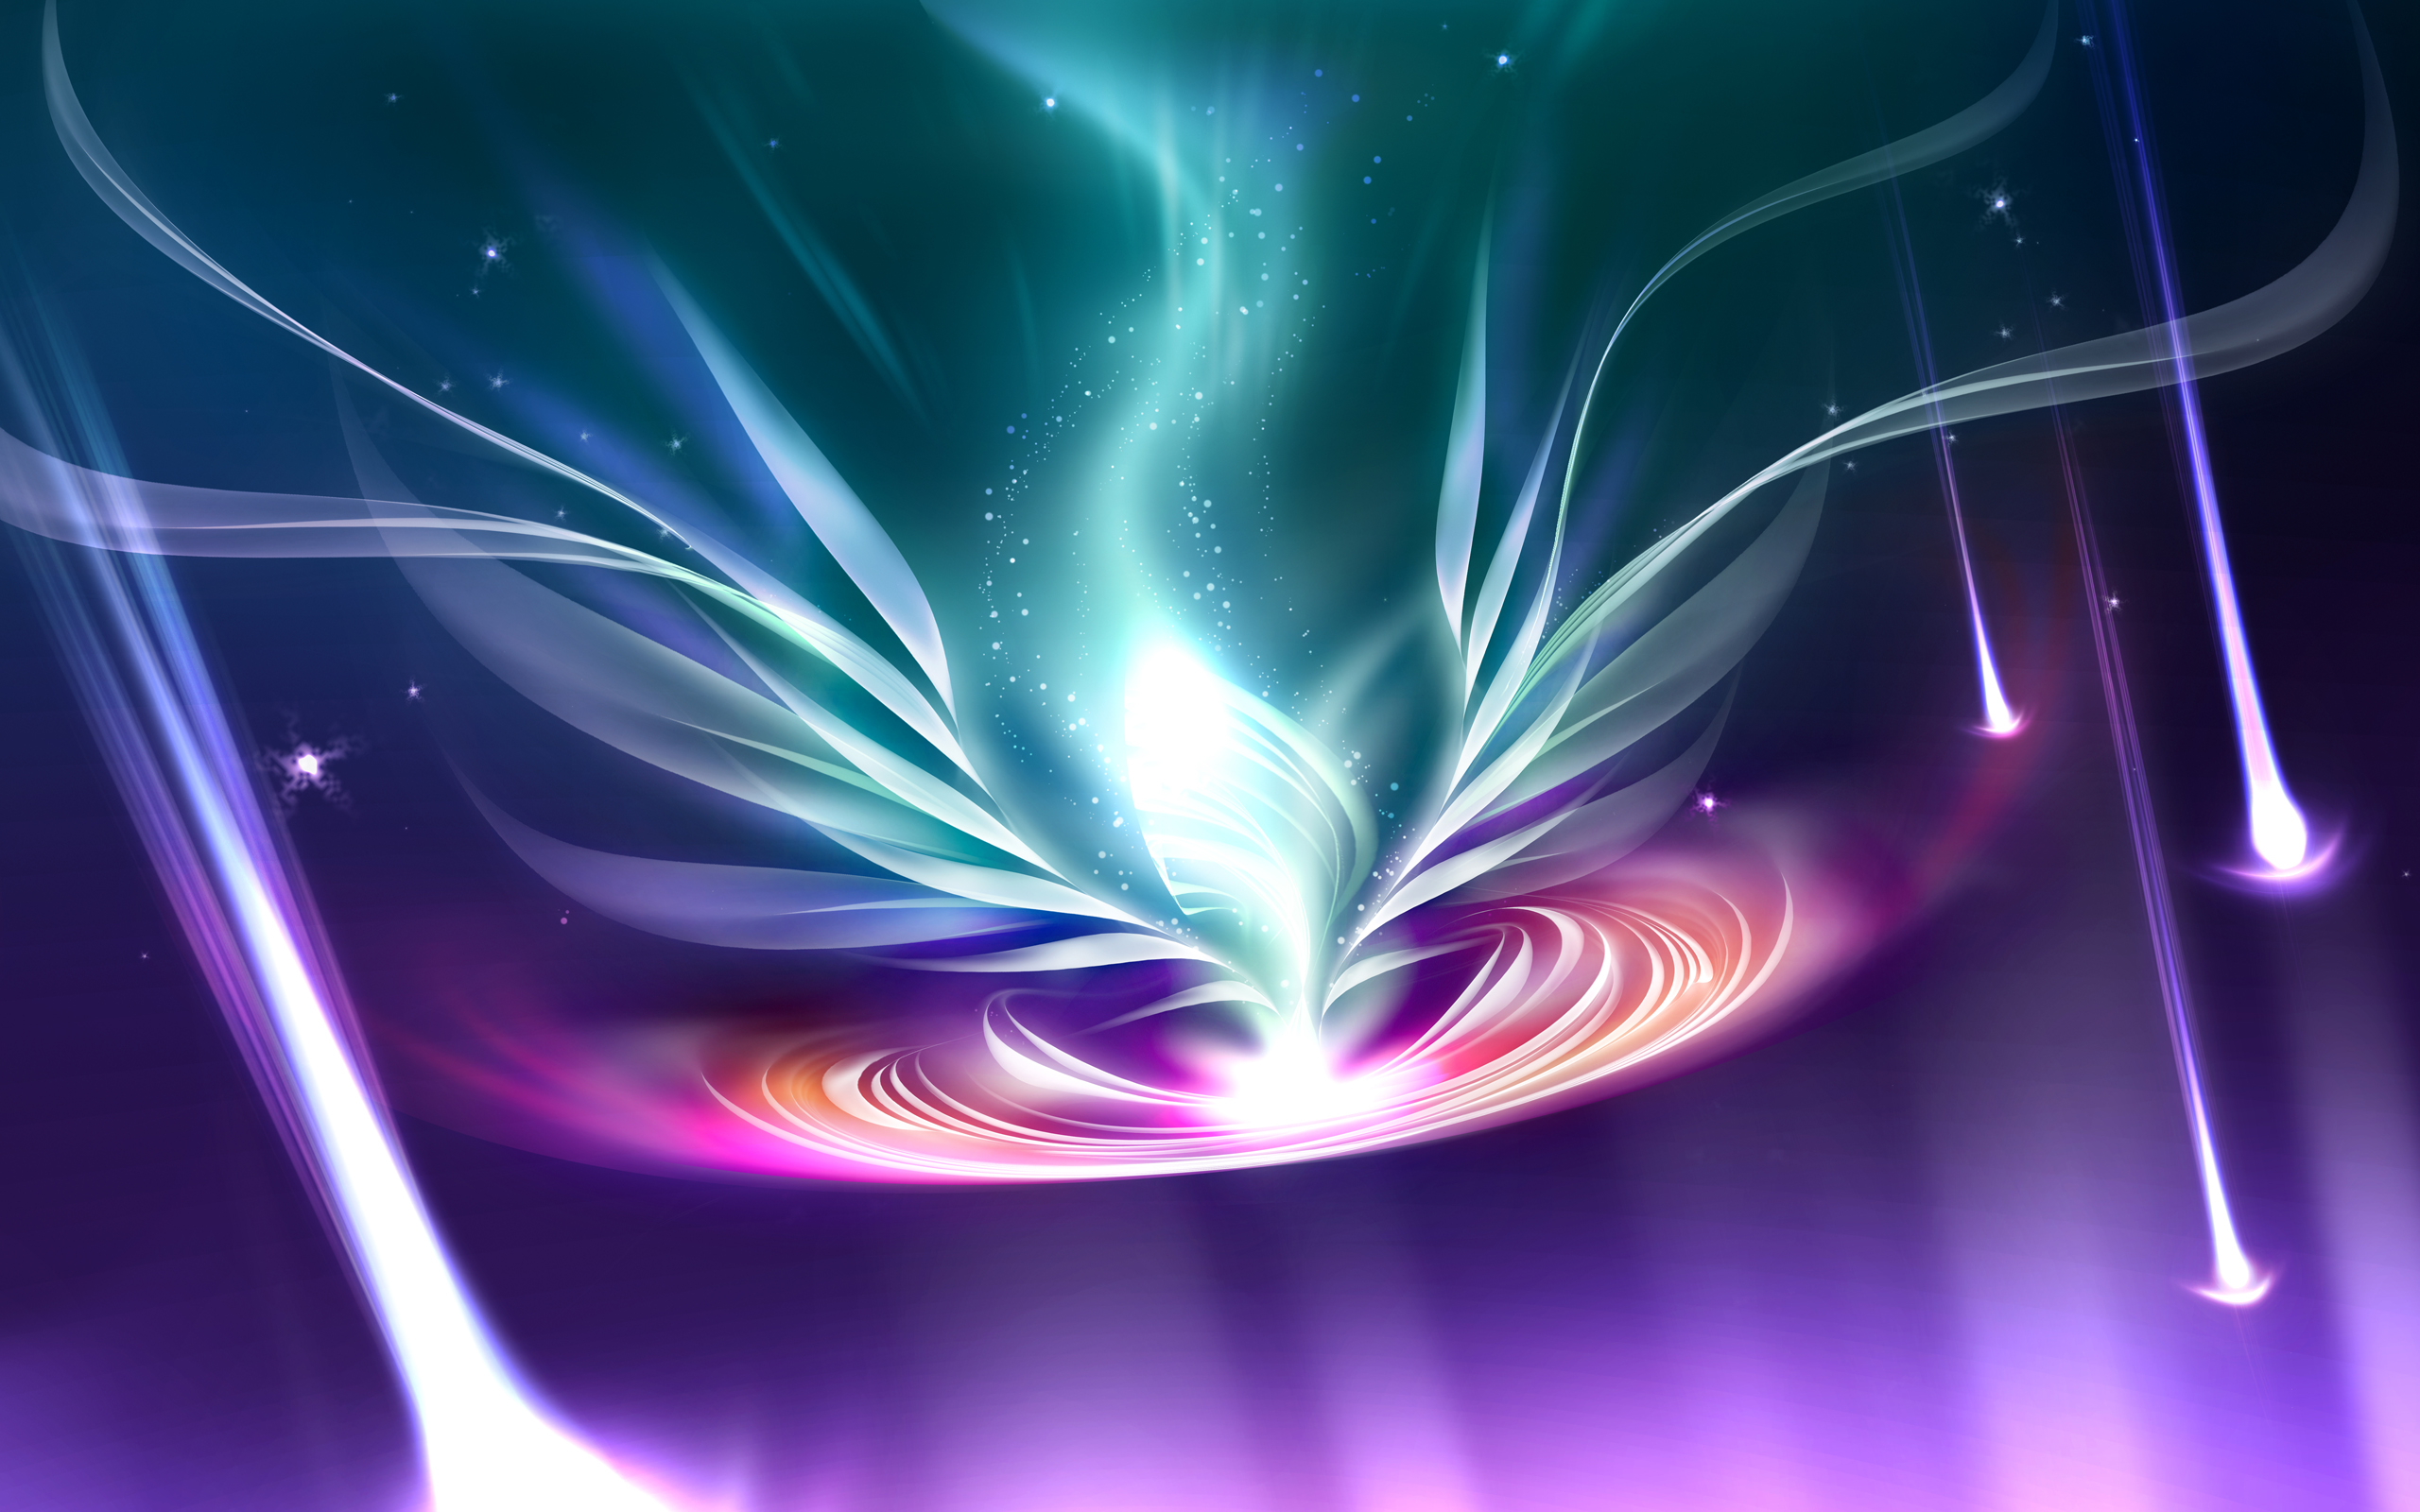 Digital Art Full Hd Wallpaper And Background 2560x1600